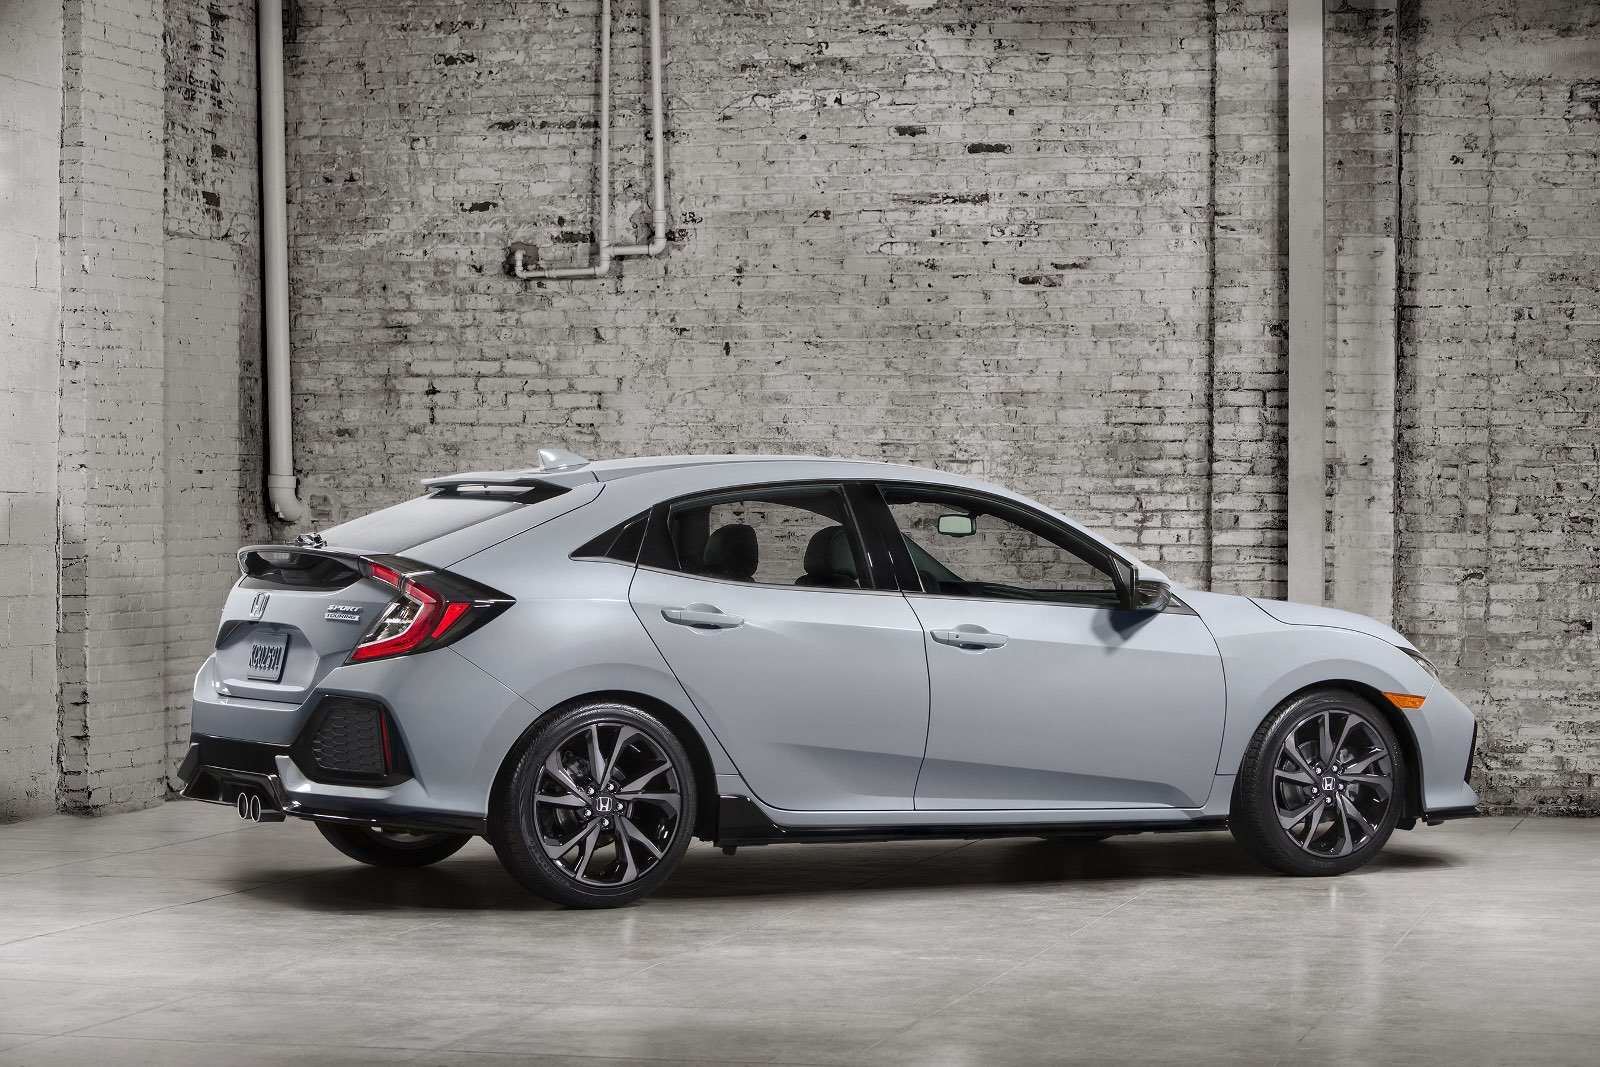 Honda 2017 Civic Hatchback